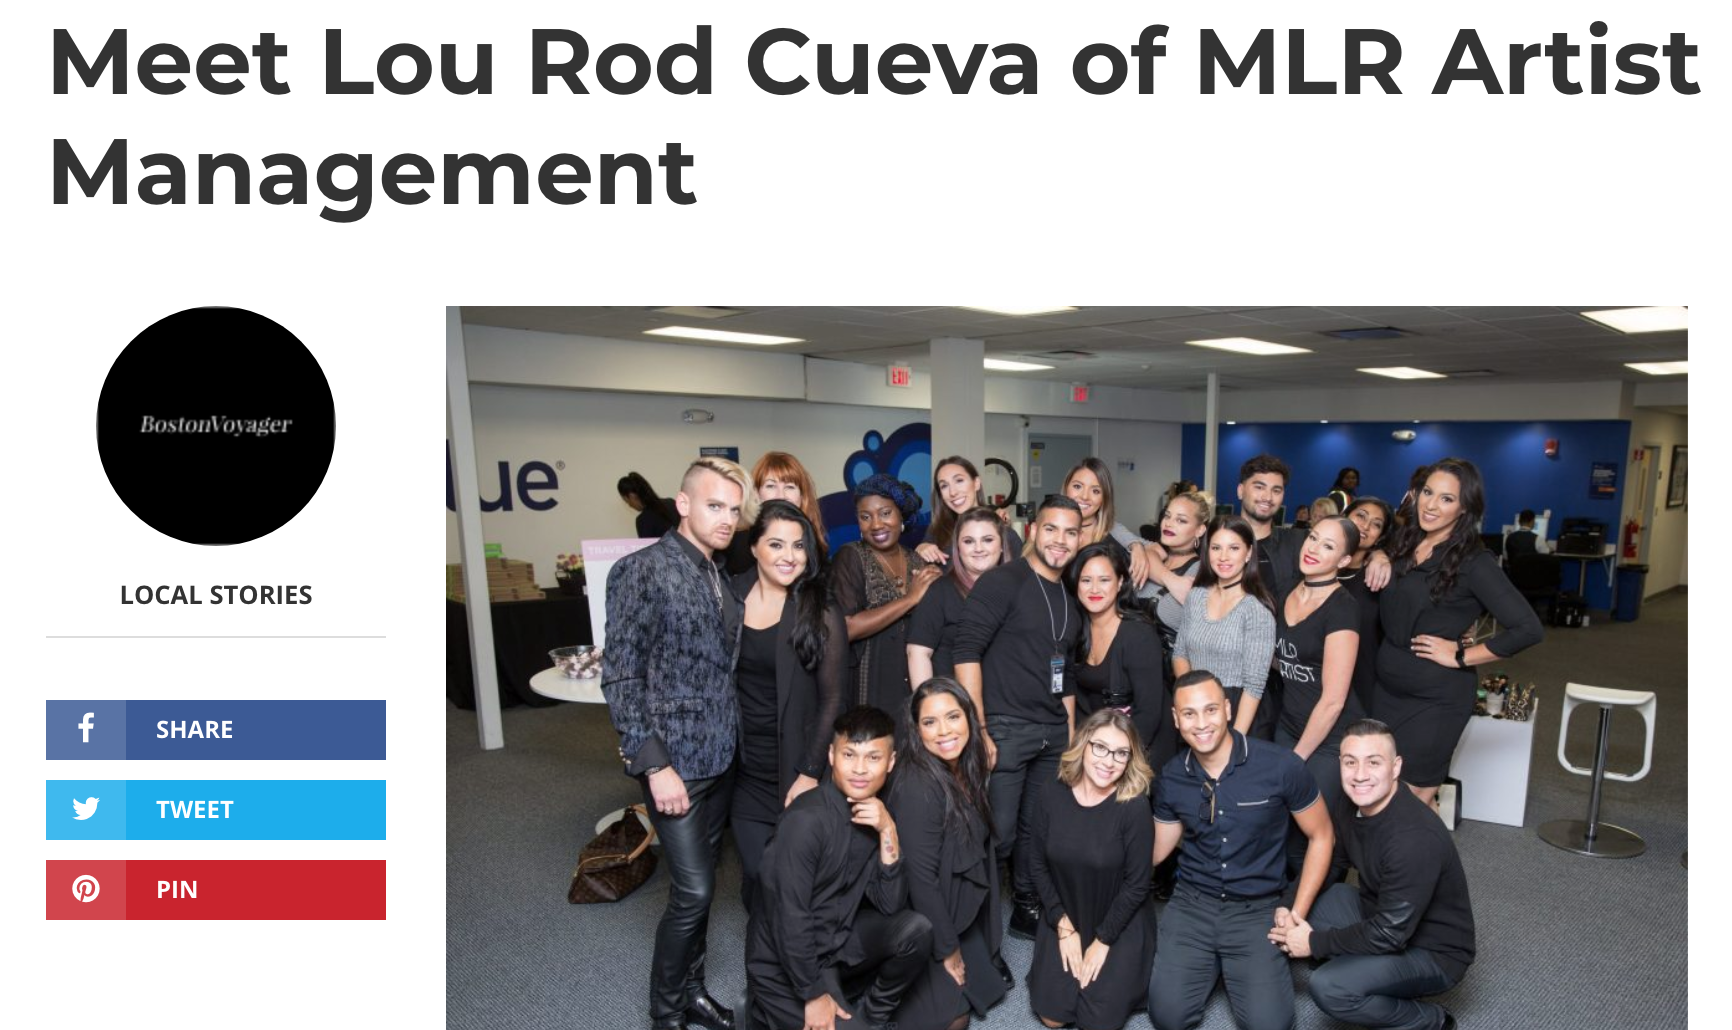 Lou Rod Cueva, Founder & CEO for Boston Voyager